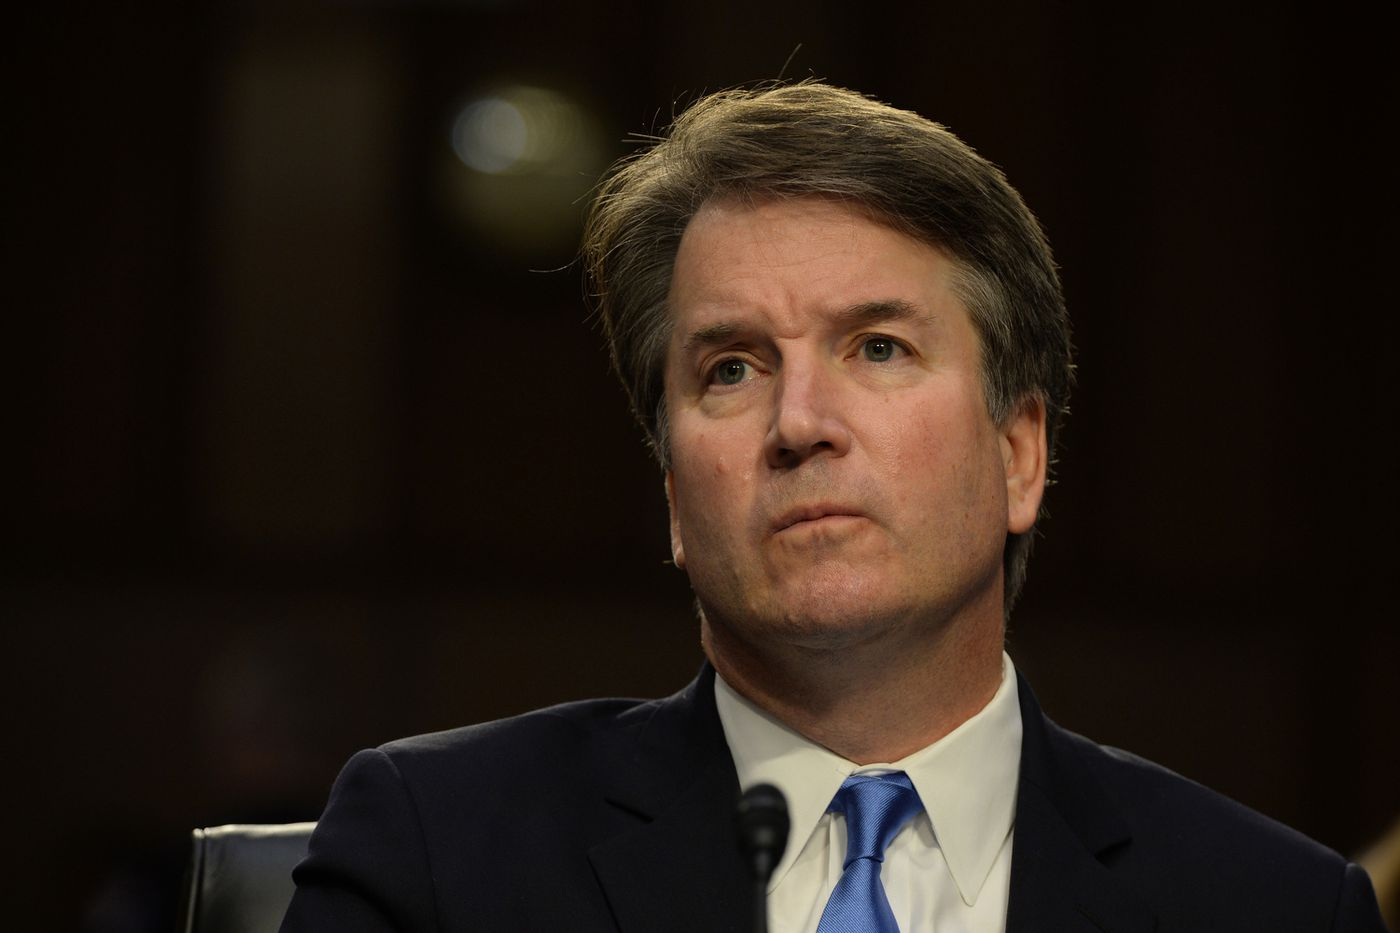 Kavanaugh allegations stir old trauma for sexual violence survivors, prompting stories of #WhyIDidntReport